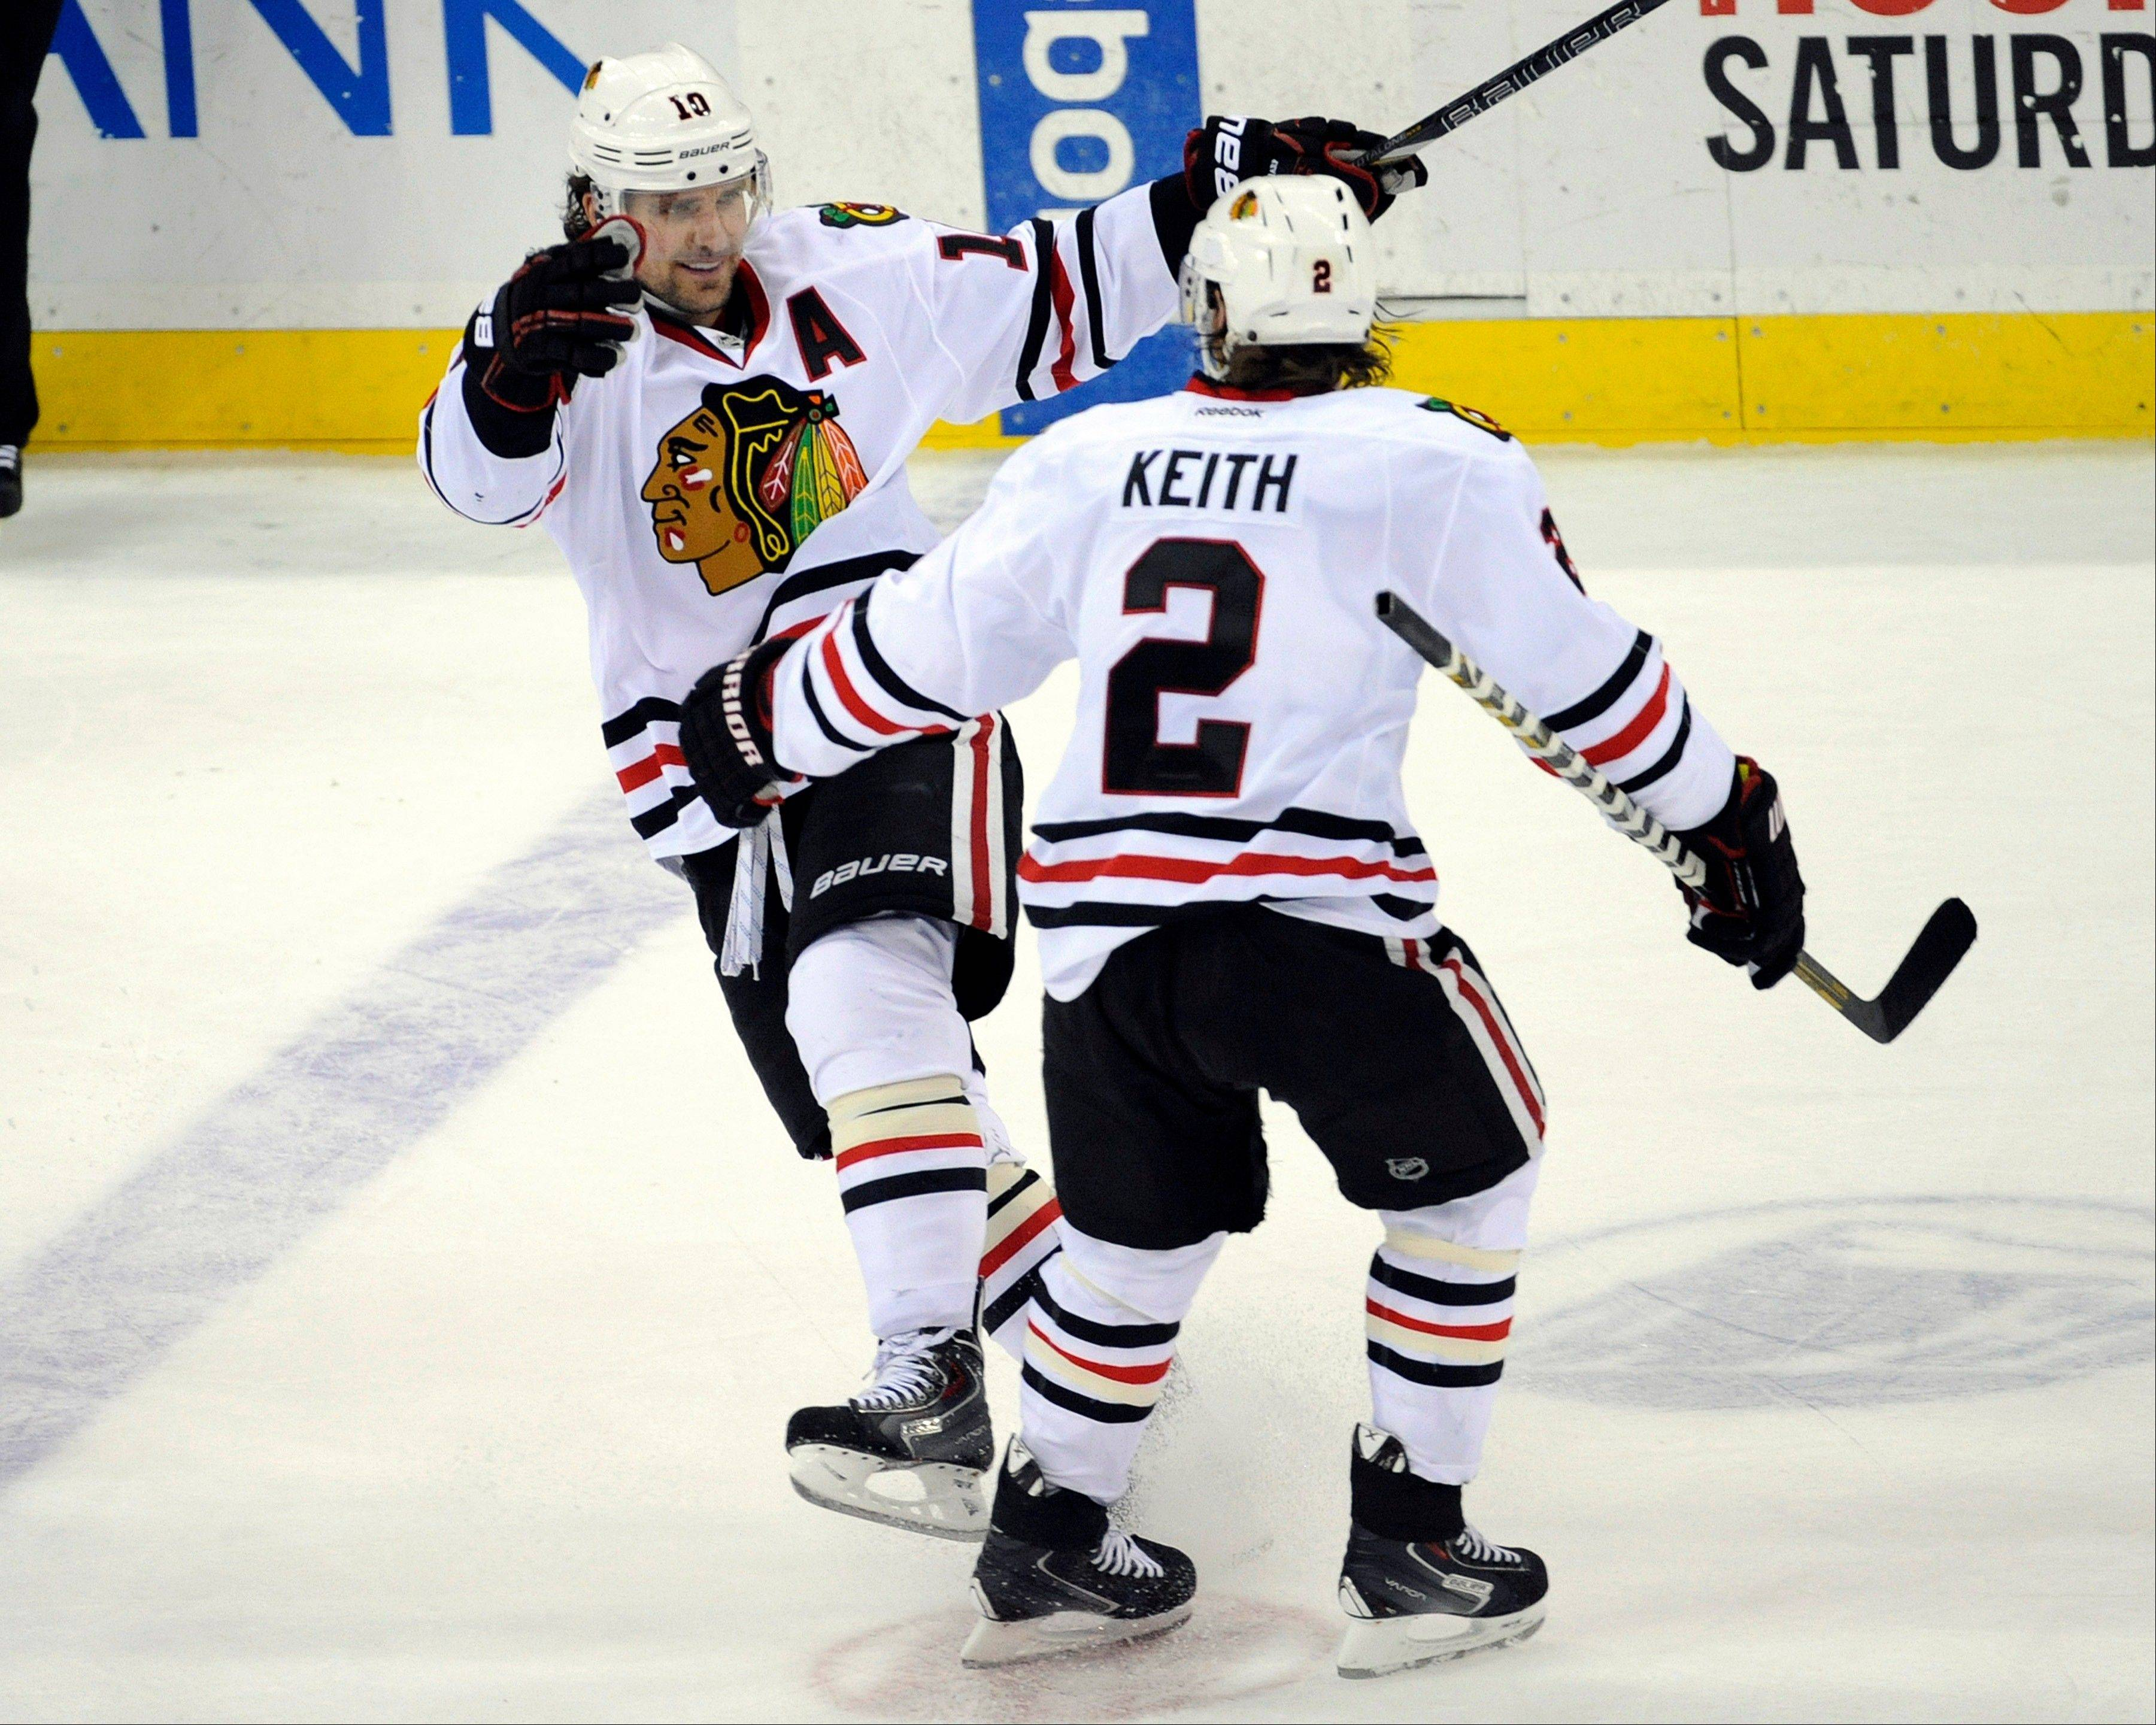 The Blackhawks' Patrick Sharp celebrates his hat trick with Duncan Keith (2) during Friday night in Newark, N.J. The Blackhawks beat the Devils 5-3.